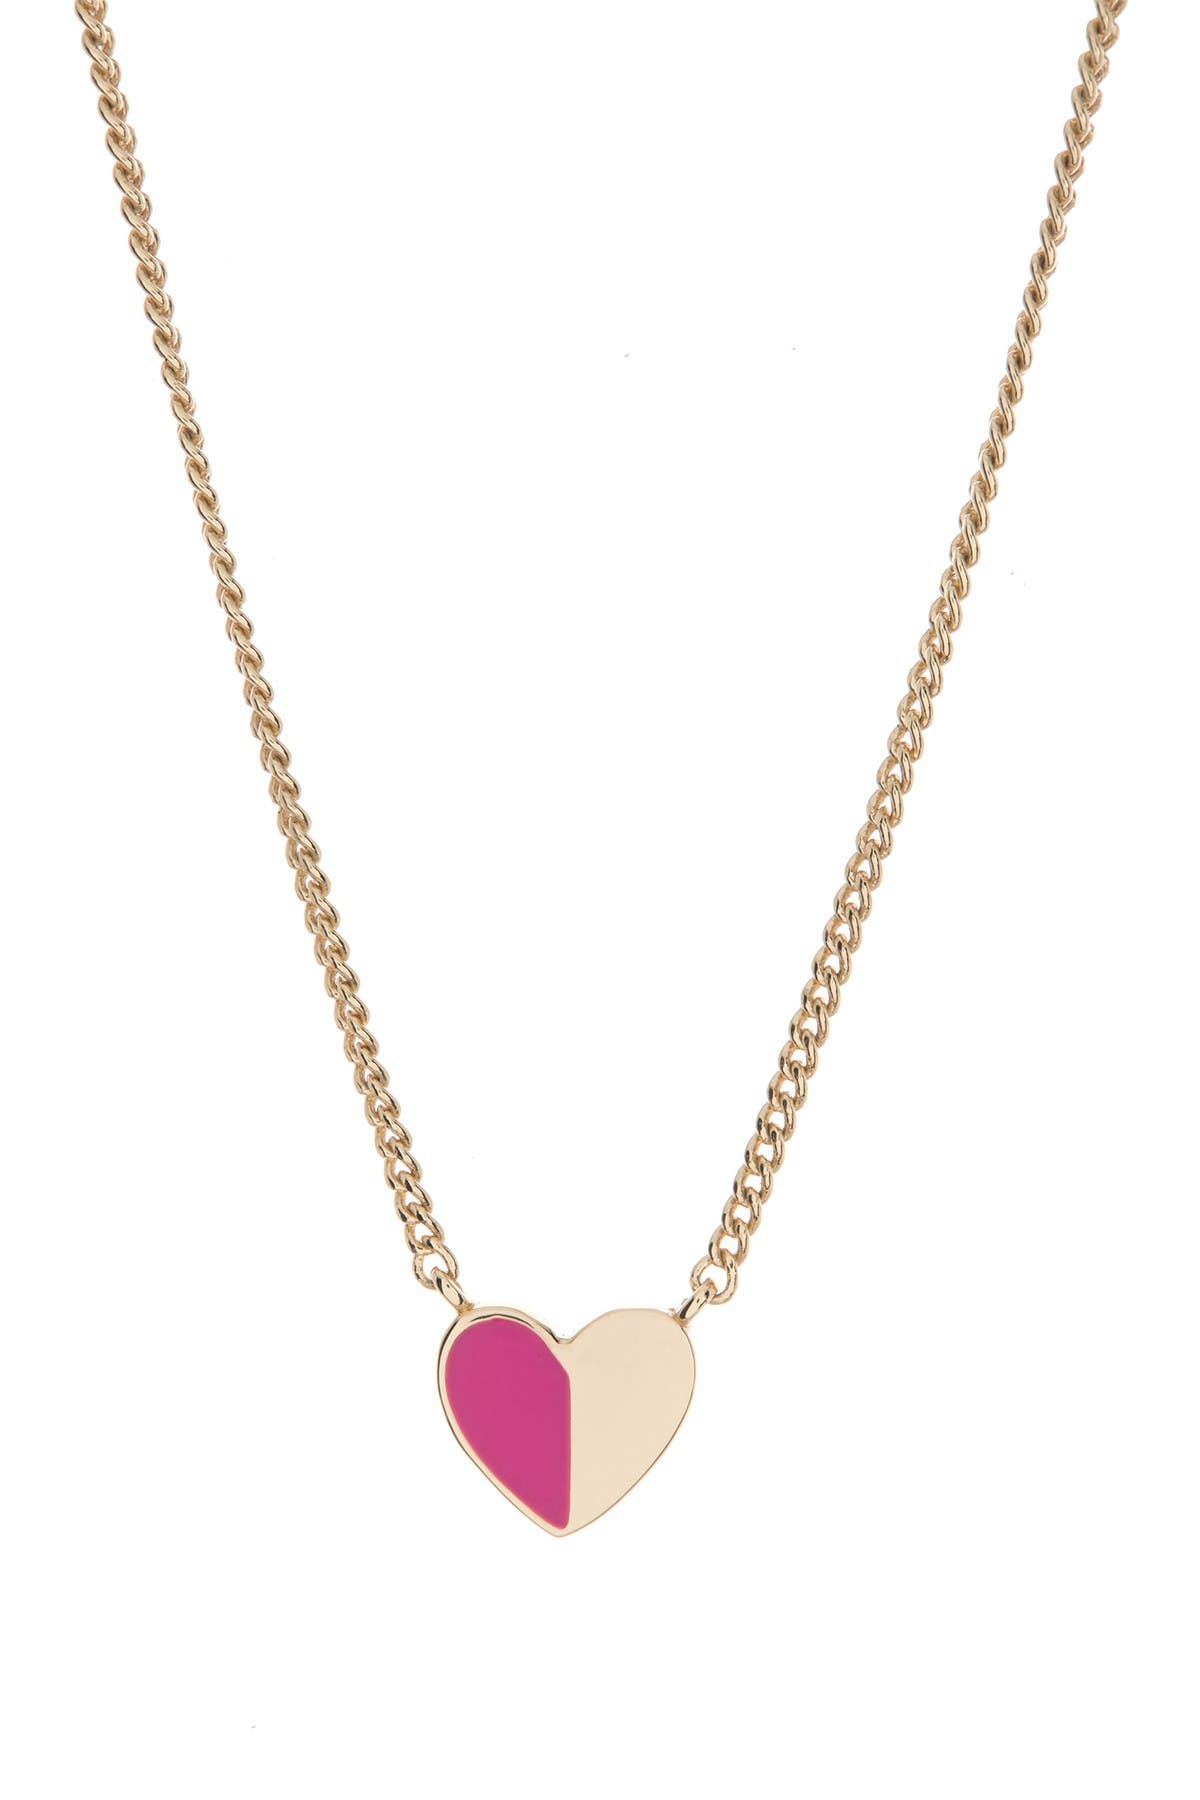 Image of DKNY Two-Tone Heart Pendant Necklace